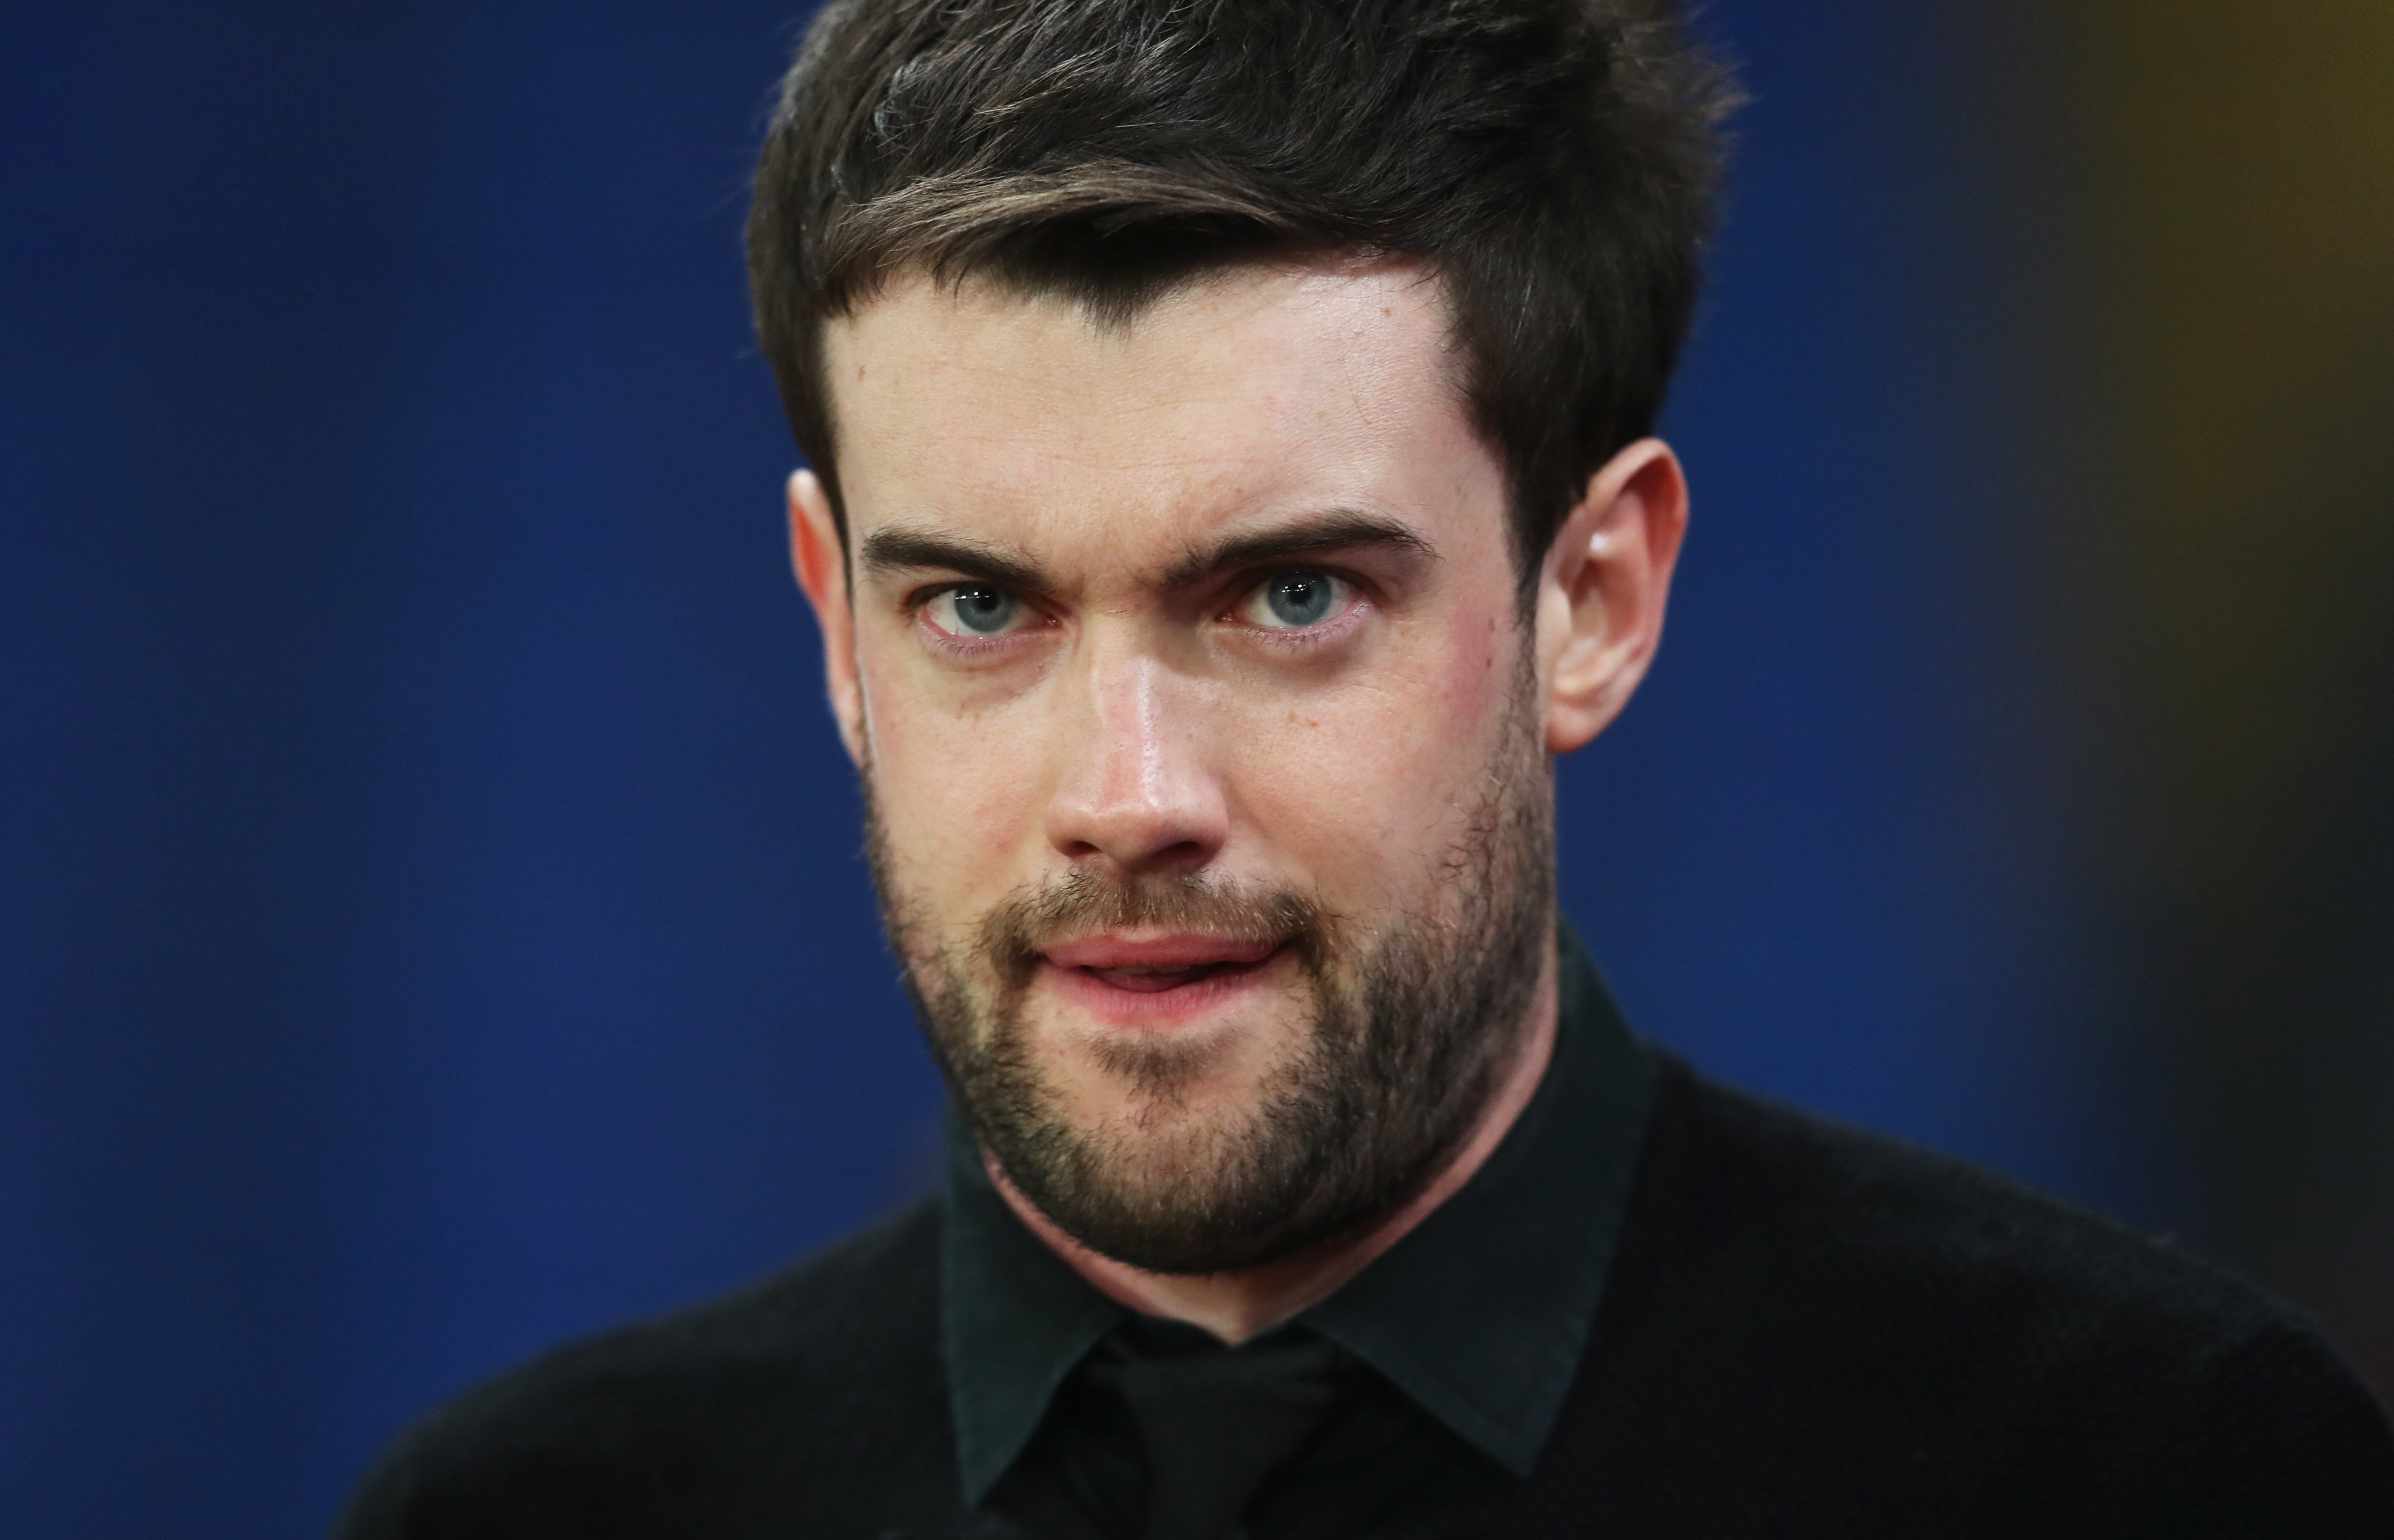 Jack Whitehall Reveals Regret Over Crude Joke About The Queen Which Upset His Family